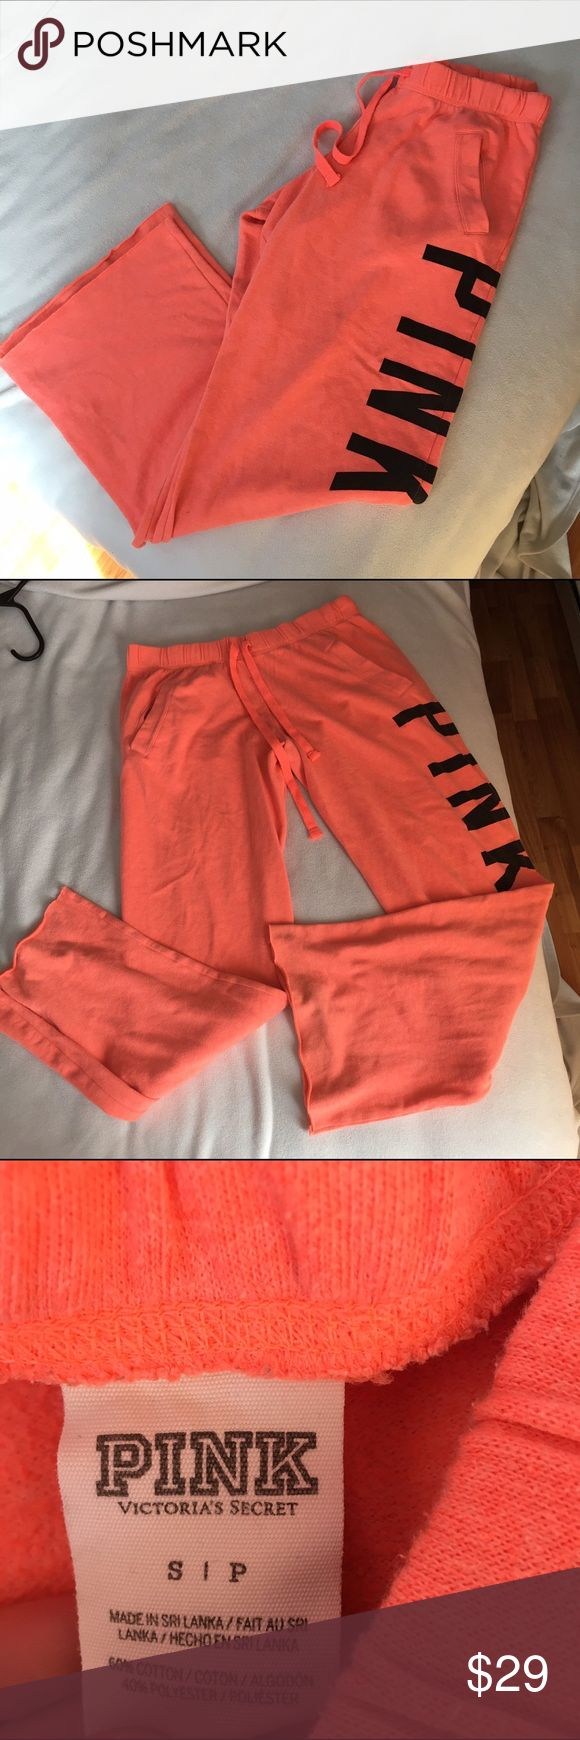 Pink Victoria's Secret Boyfriend Sweatpants small In great condition! Worn minimally. Size small from Victoria's Secret. These are straight leg sweats. Orangey-coral color. Comfy and cozy! PINK Victoria's Secret Pants Track Pants & Joggers